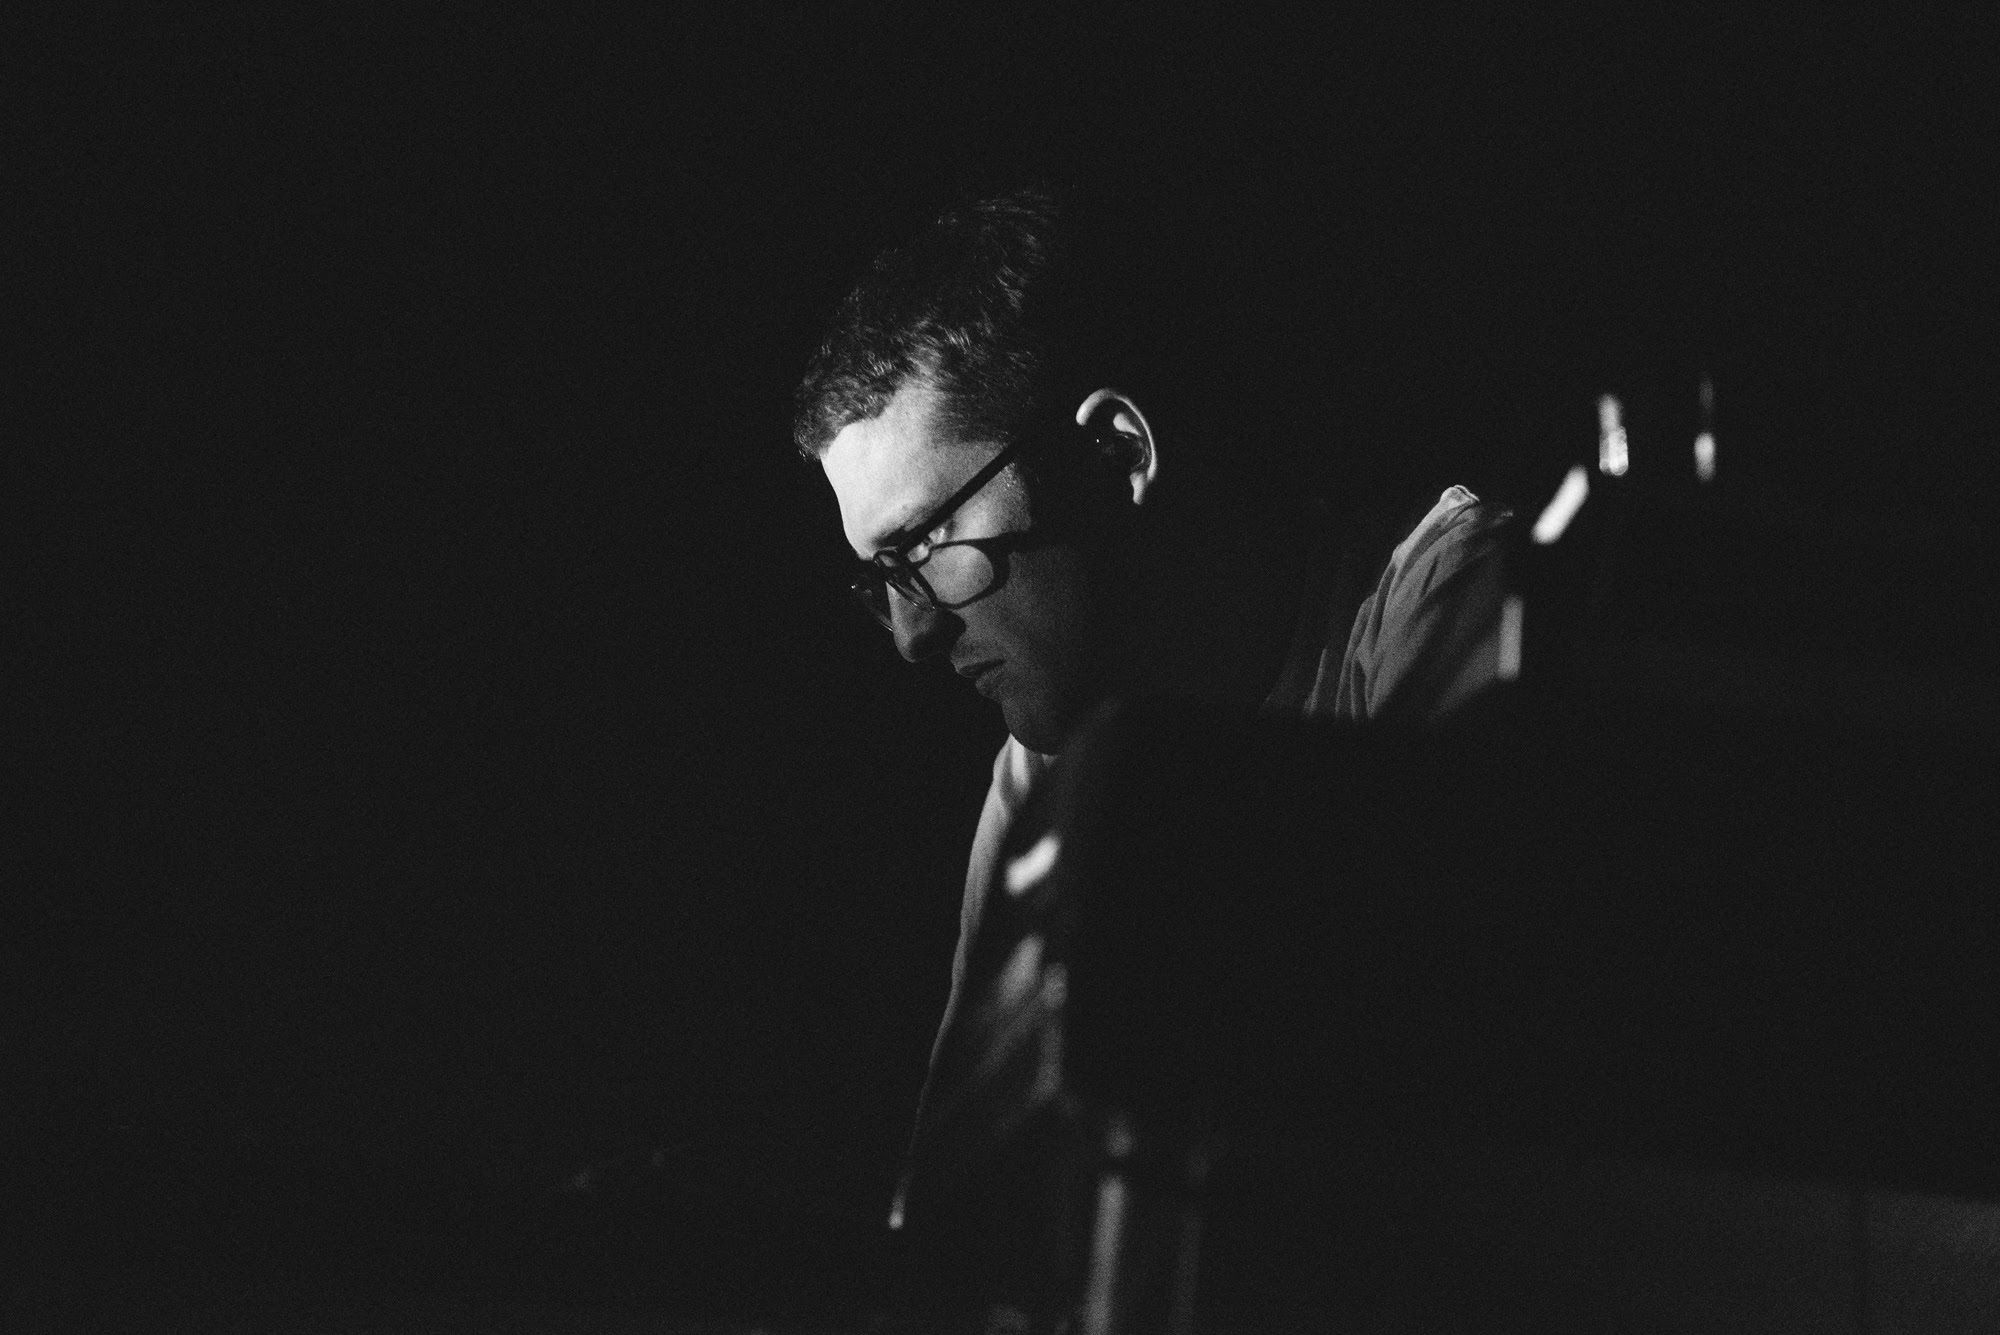 Floating Points announces 'Kuiper' EP, the album comes out on July 22nd via Luaka Bop/PLUTO Records.